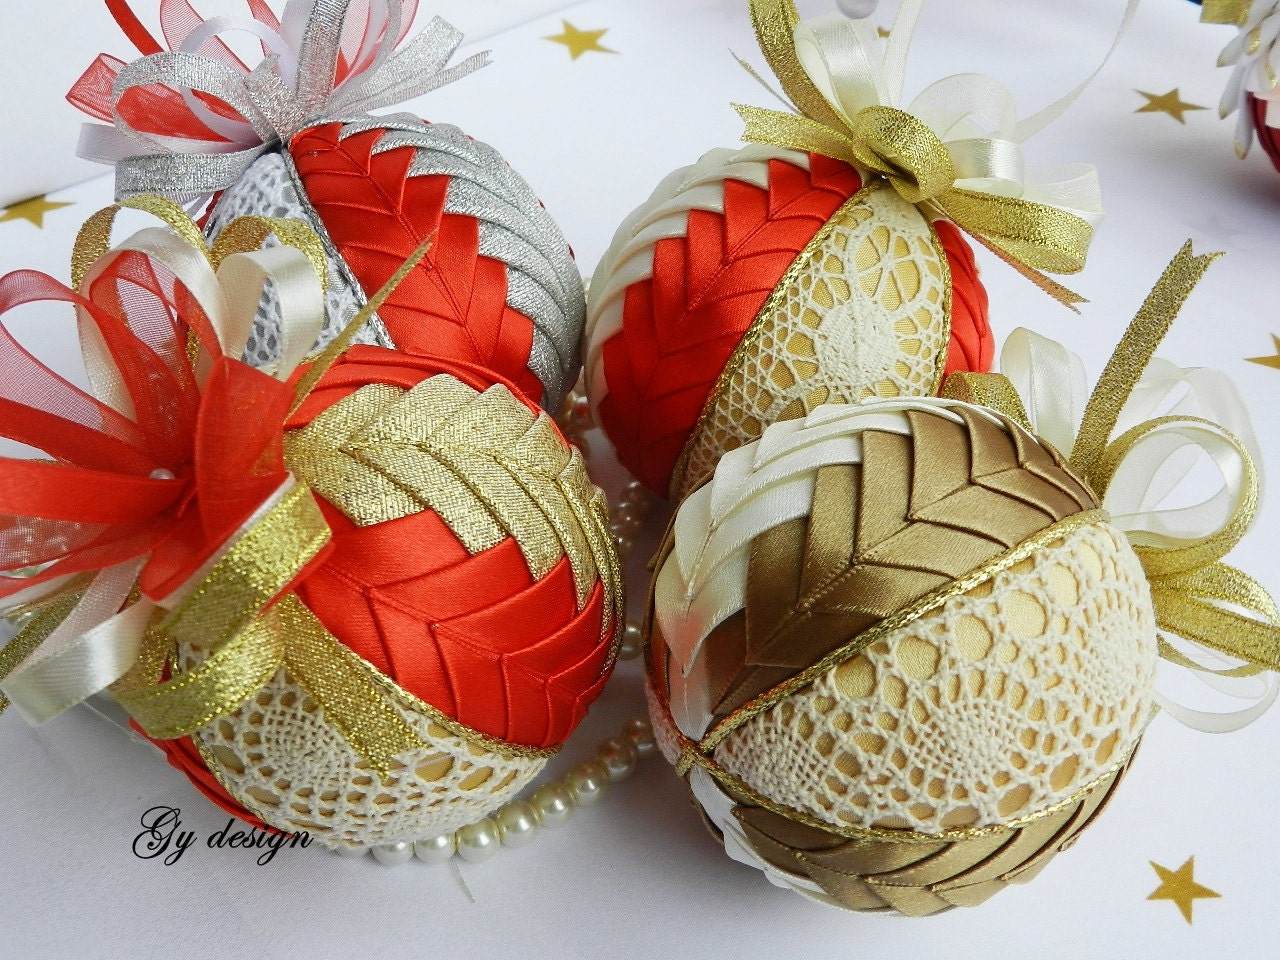 Lovely Lace Ornament Quilted Ornaments Xmas Baubles Christmas